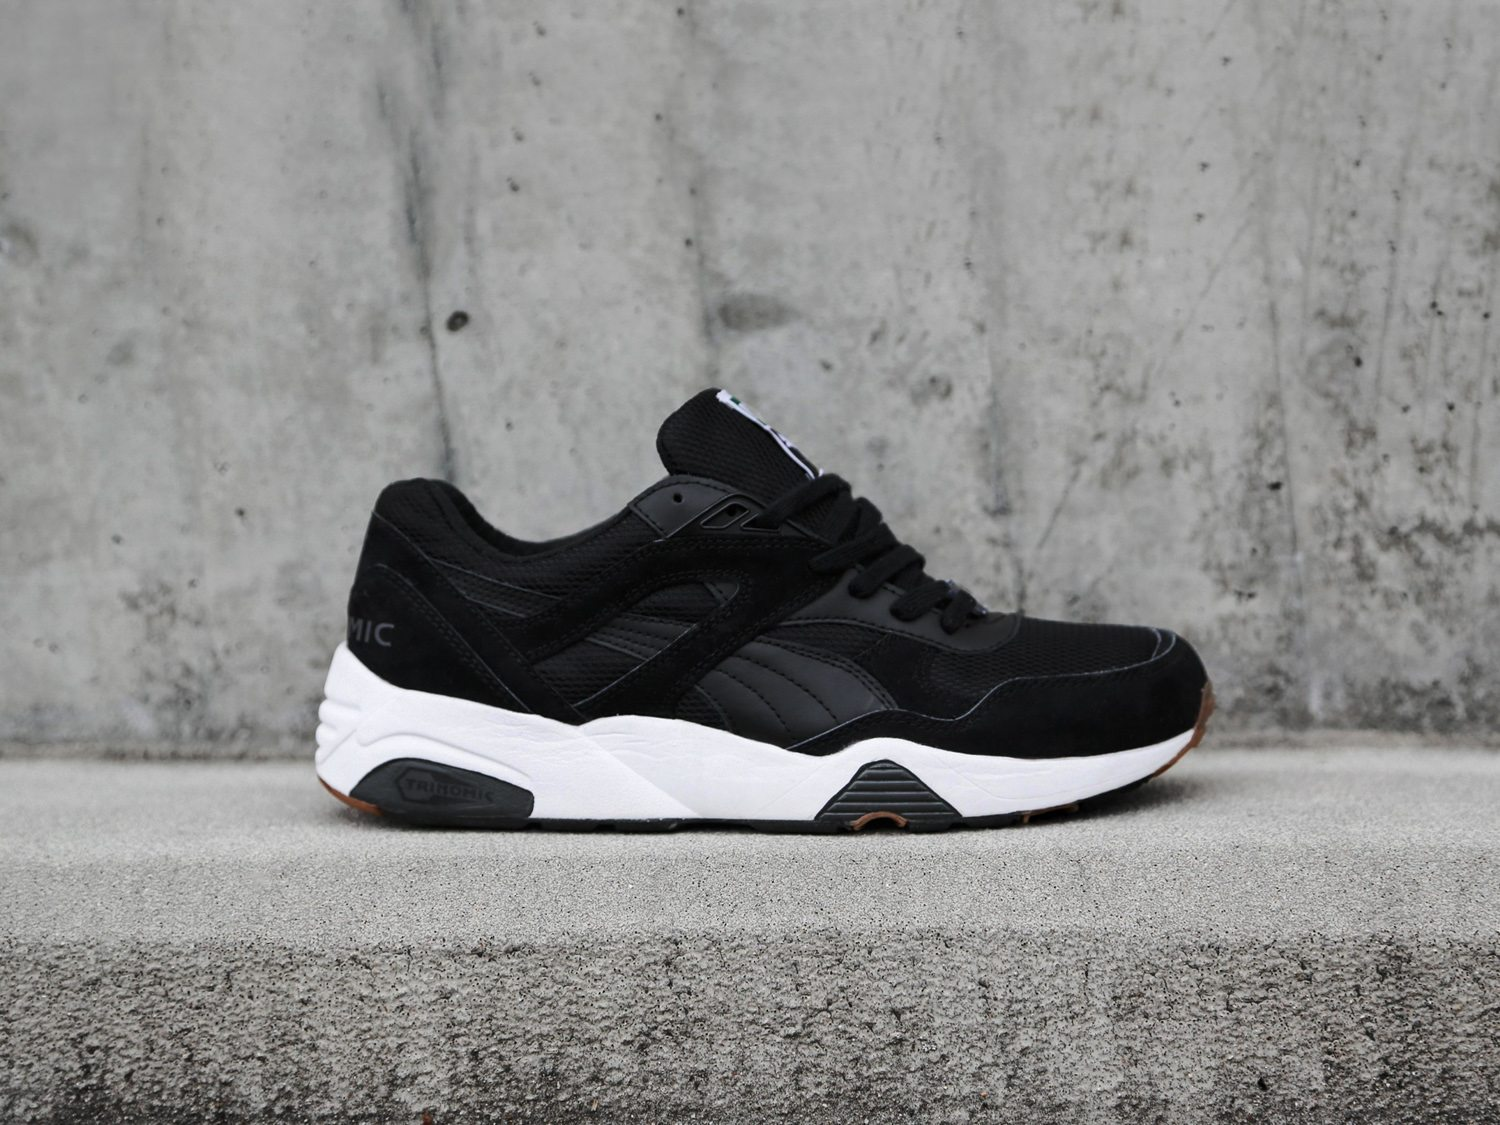 PUMA-Trinomic-Spring-Summer-2015-Black-&-White-Collection-18